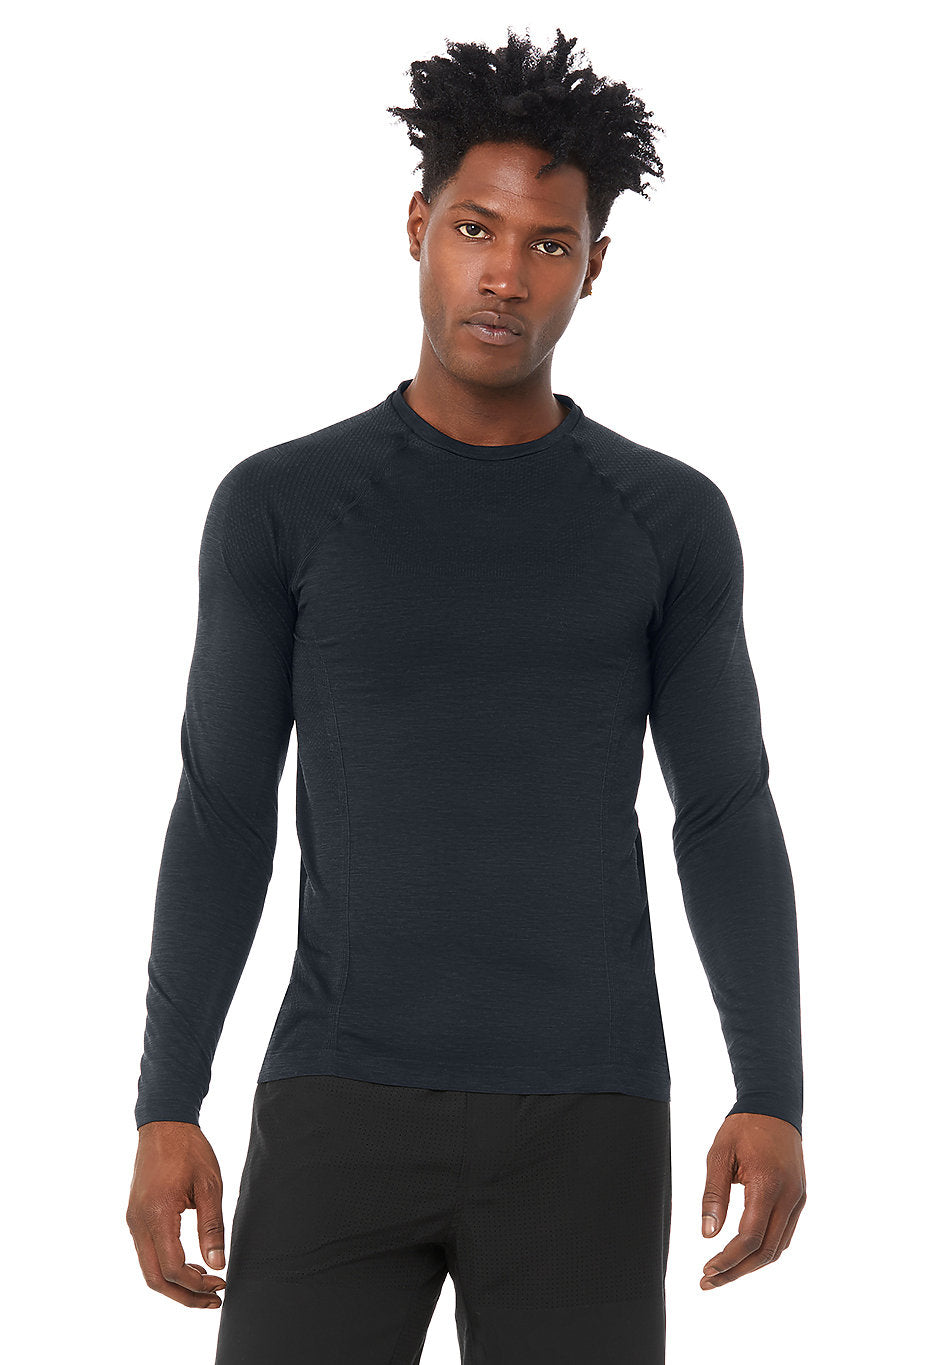 AMPLIFY SEAMLESS LONG SLEEVE | ALO